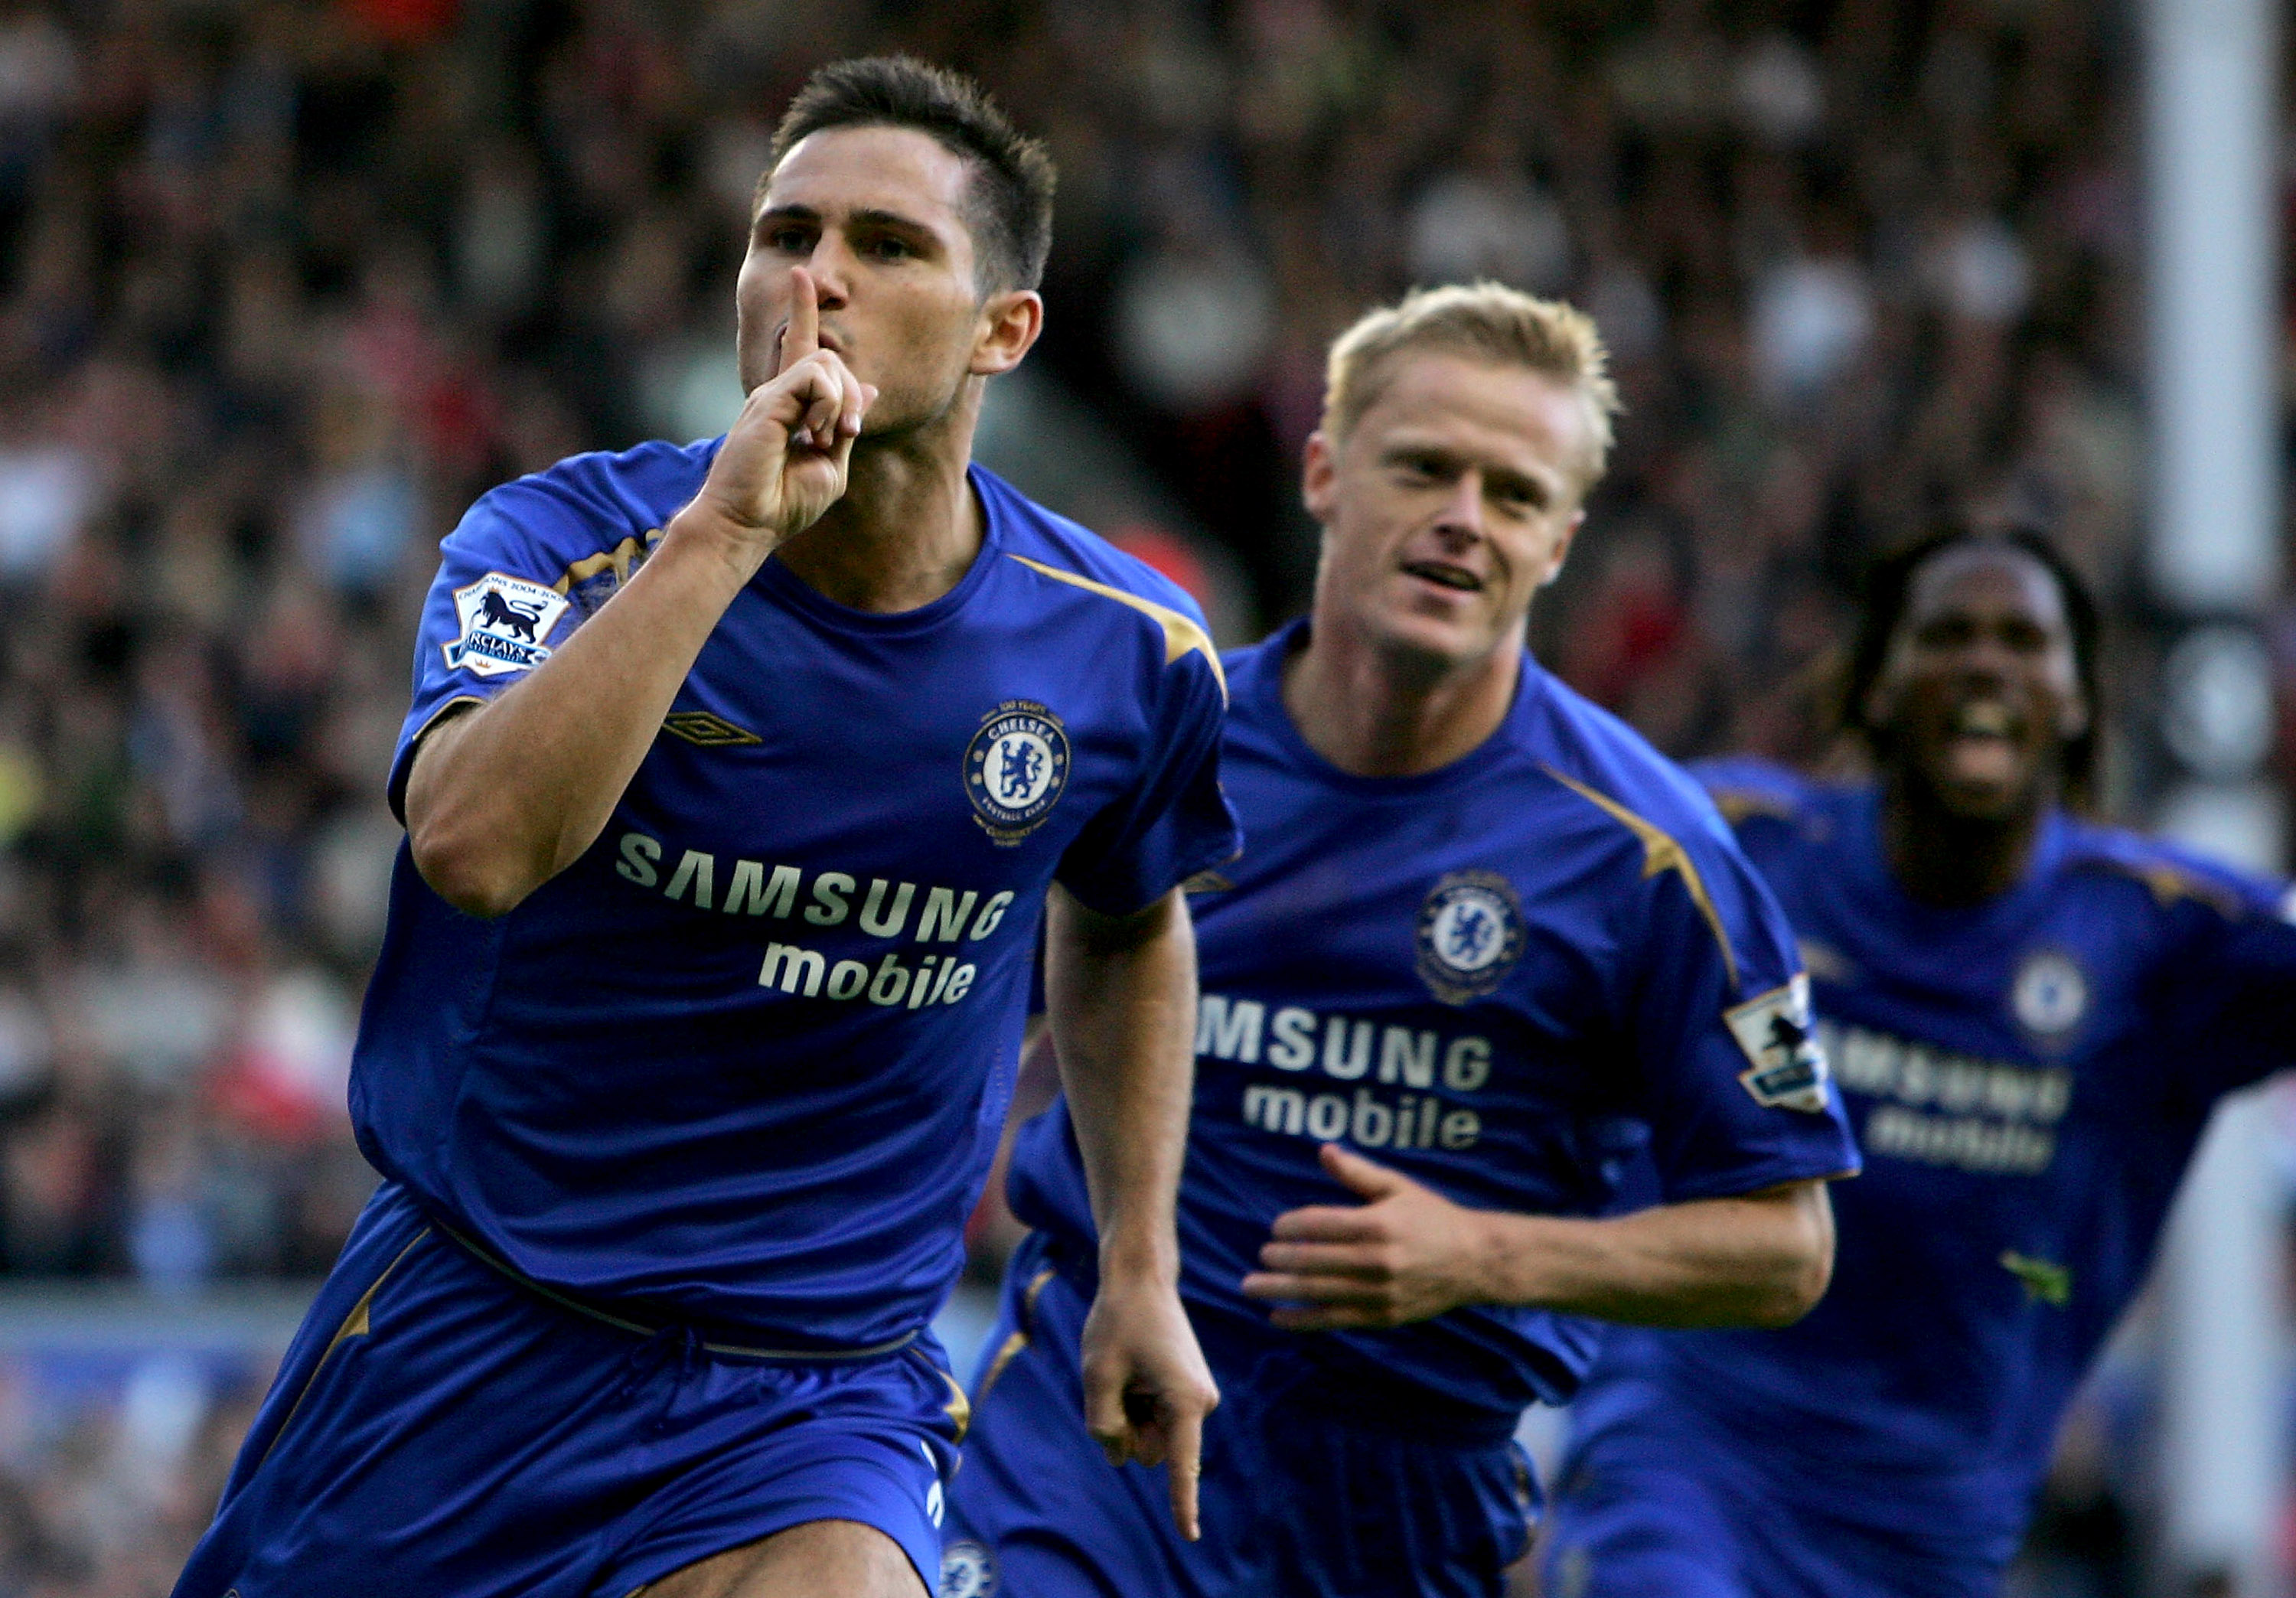 Frank Lampard has picked a bined XI from Chelsea s best team